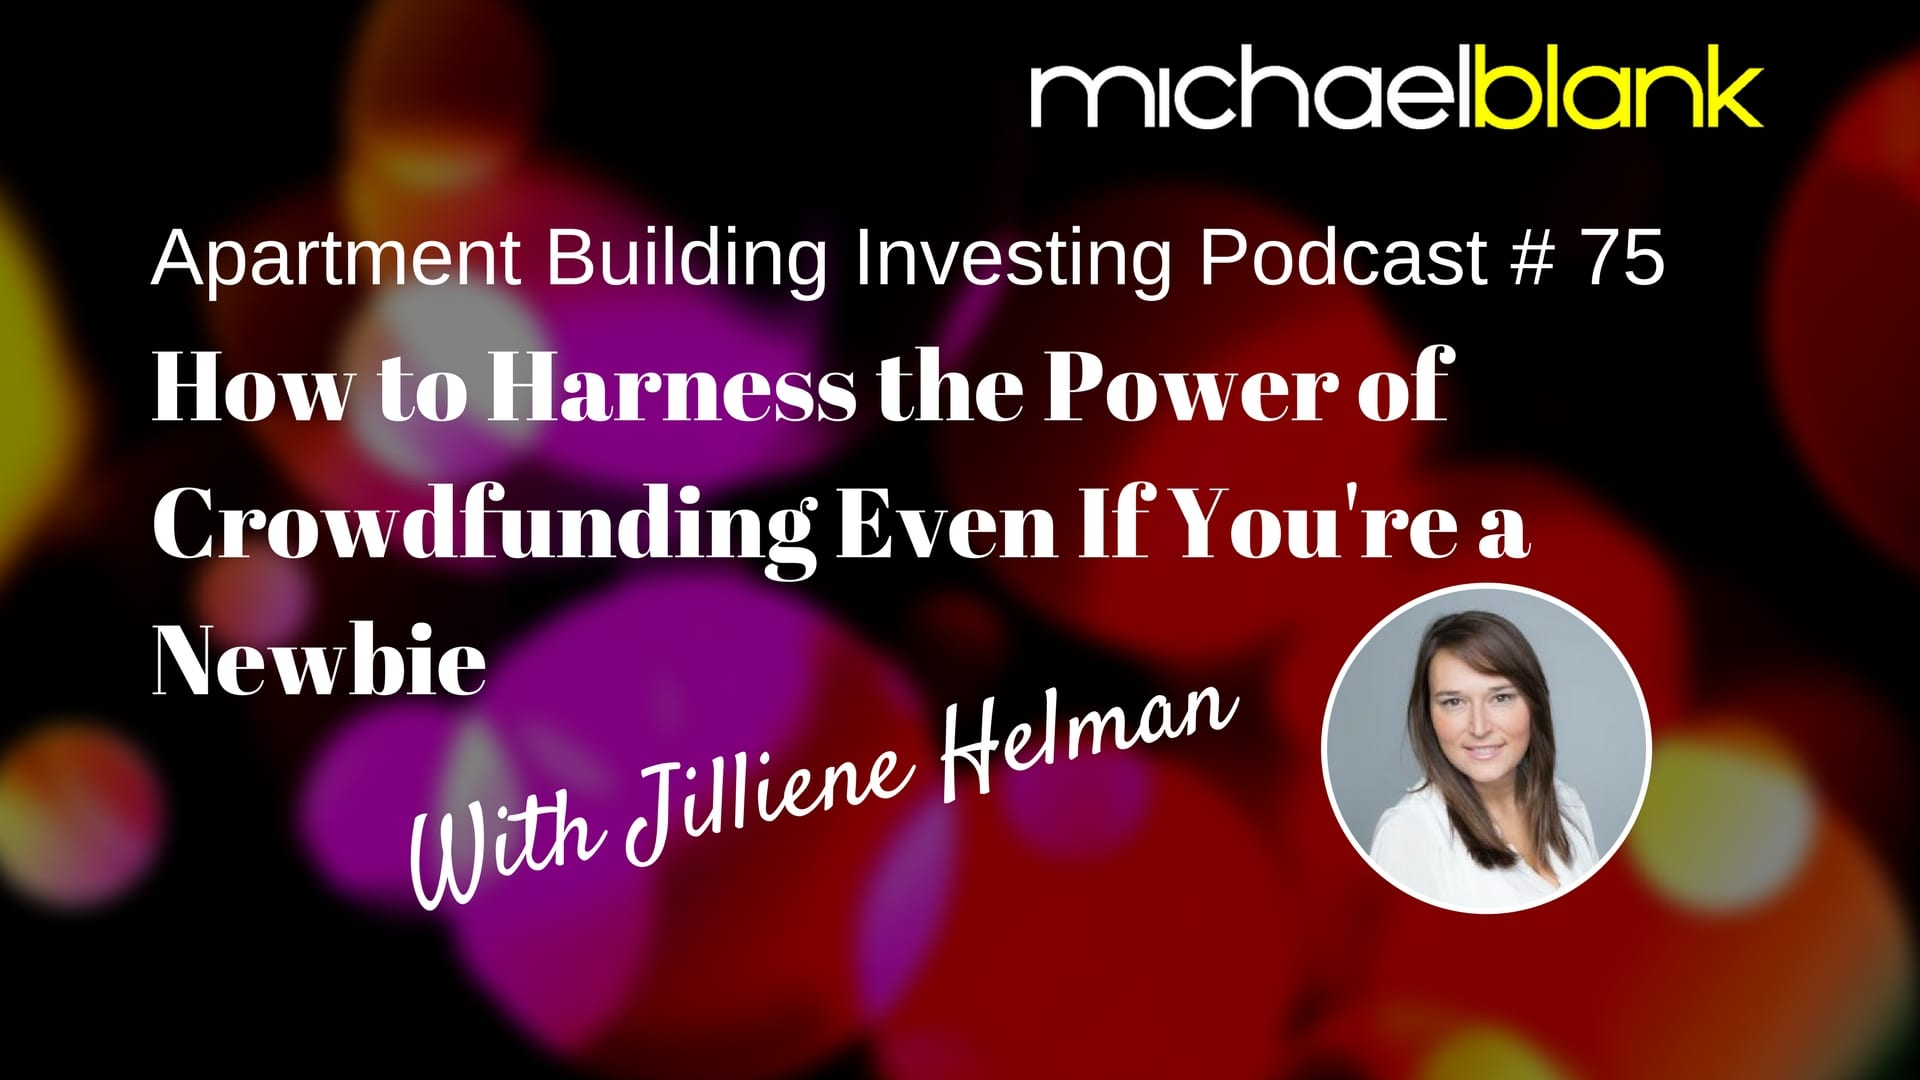 MB 075: How to Harness the Power of Crowdfunding Even If You're a Newbie – With Jilliene Helman, CEO of RealtyMogul